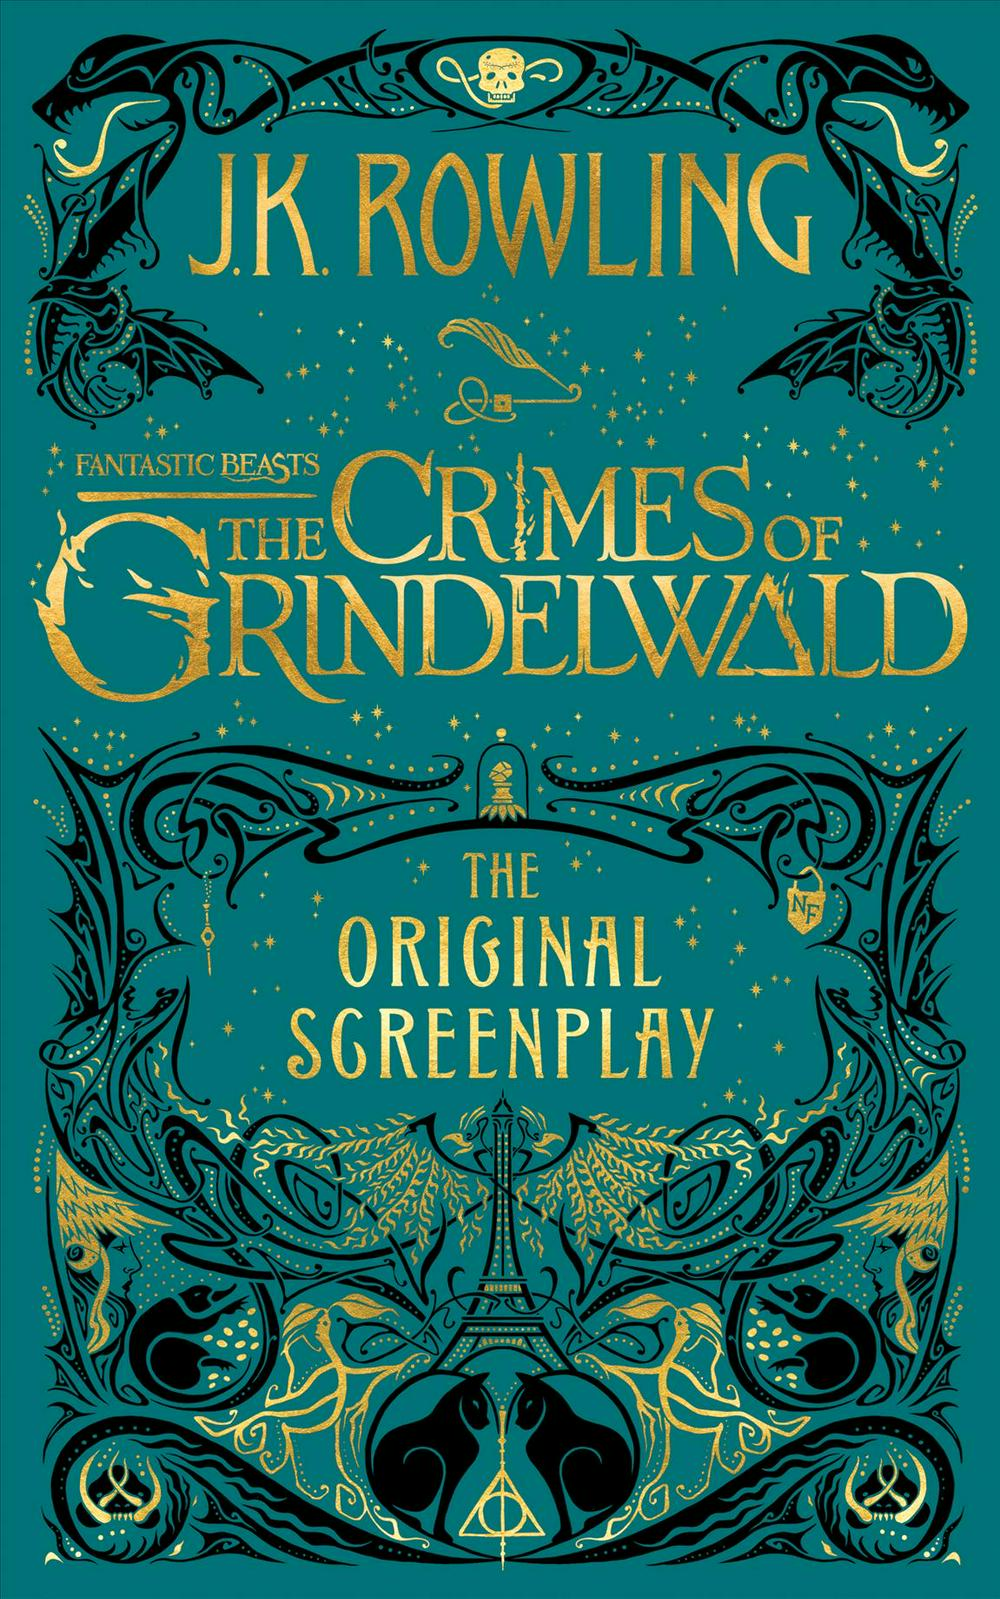 Fantastic Beasts - the Crimes of Grindelwald by J. K. Rowling, MinaLima, ISBN: 9781338263893